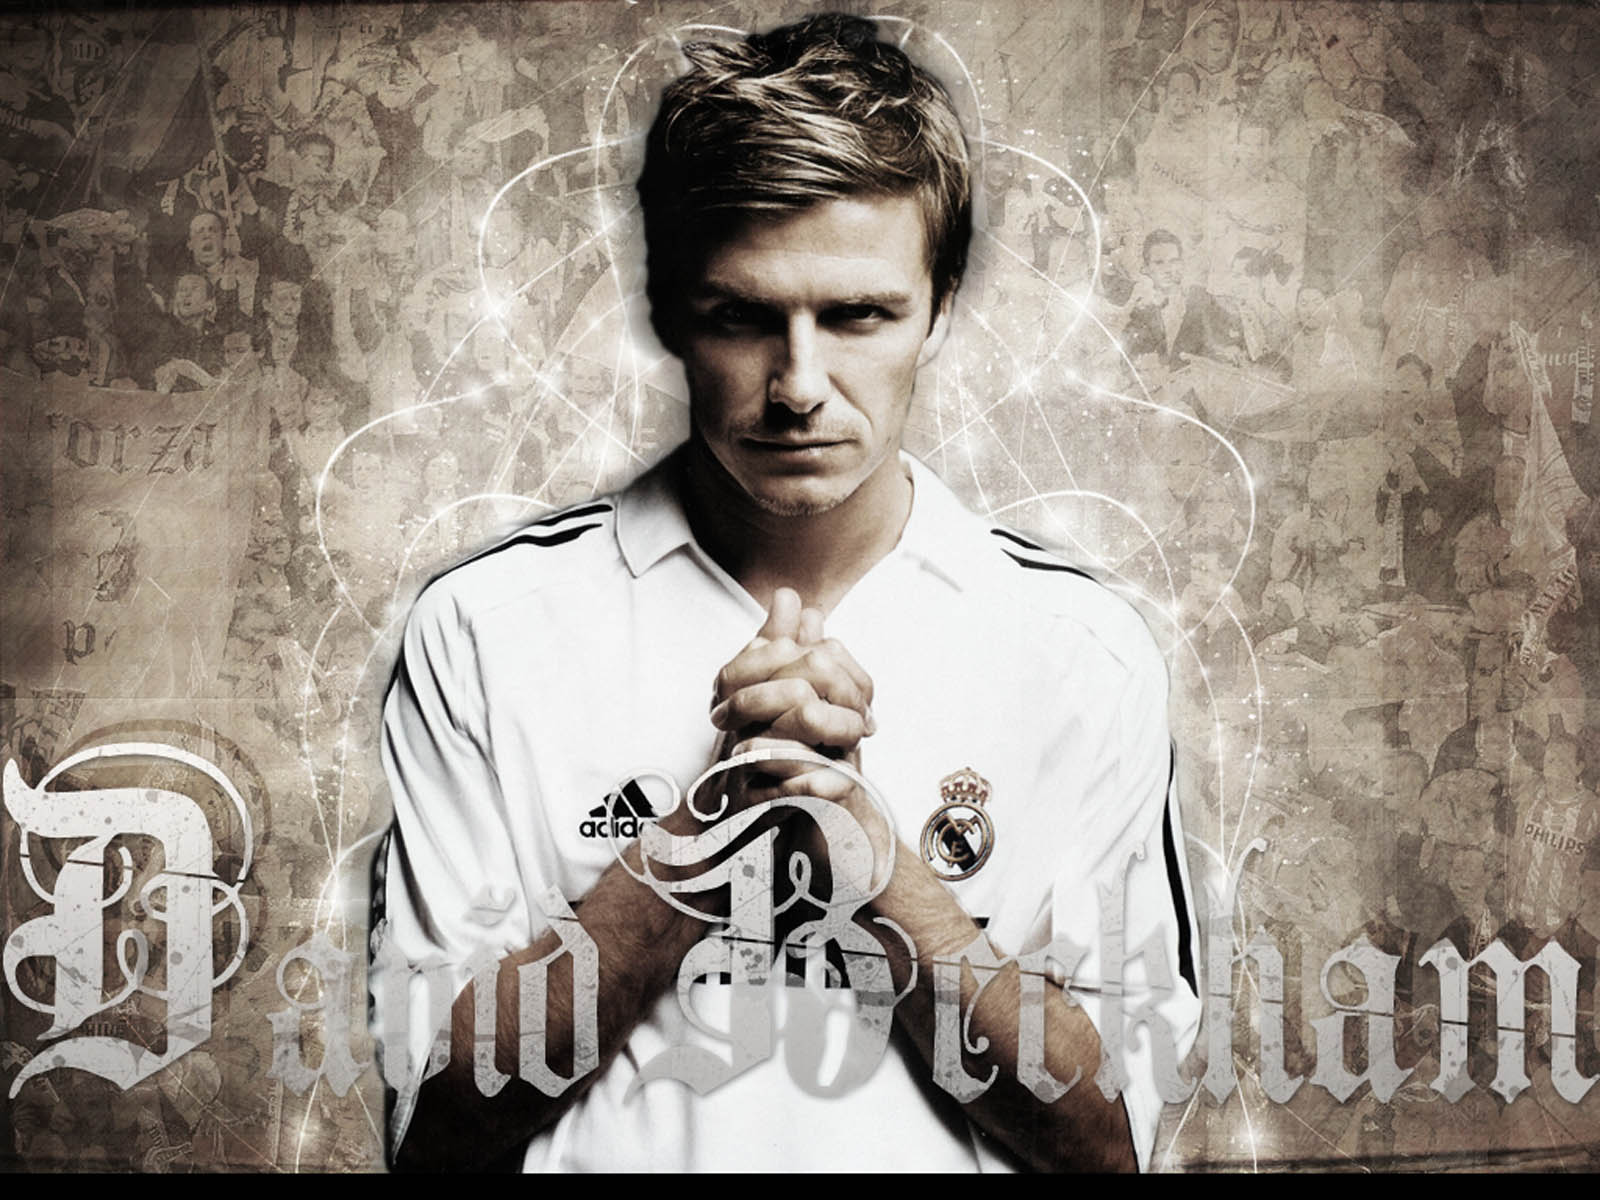 David beckham wallpapers wallpaper cave david beckham wallpaper 2013 19235 hd wallpapers in celebrities m voltagebd